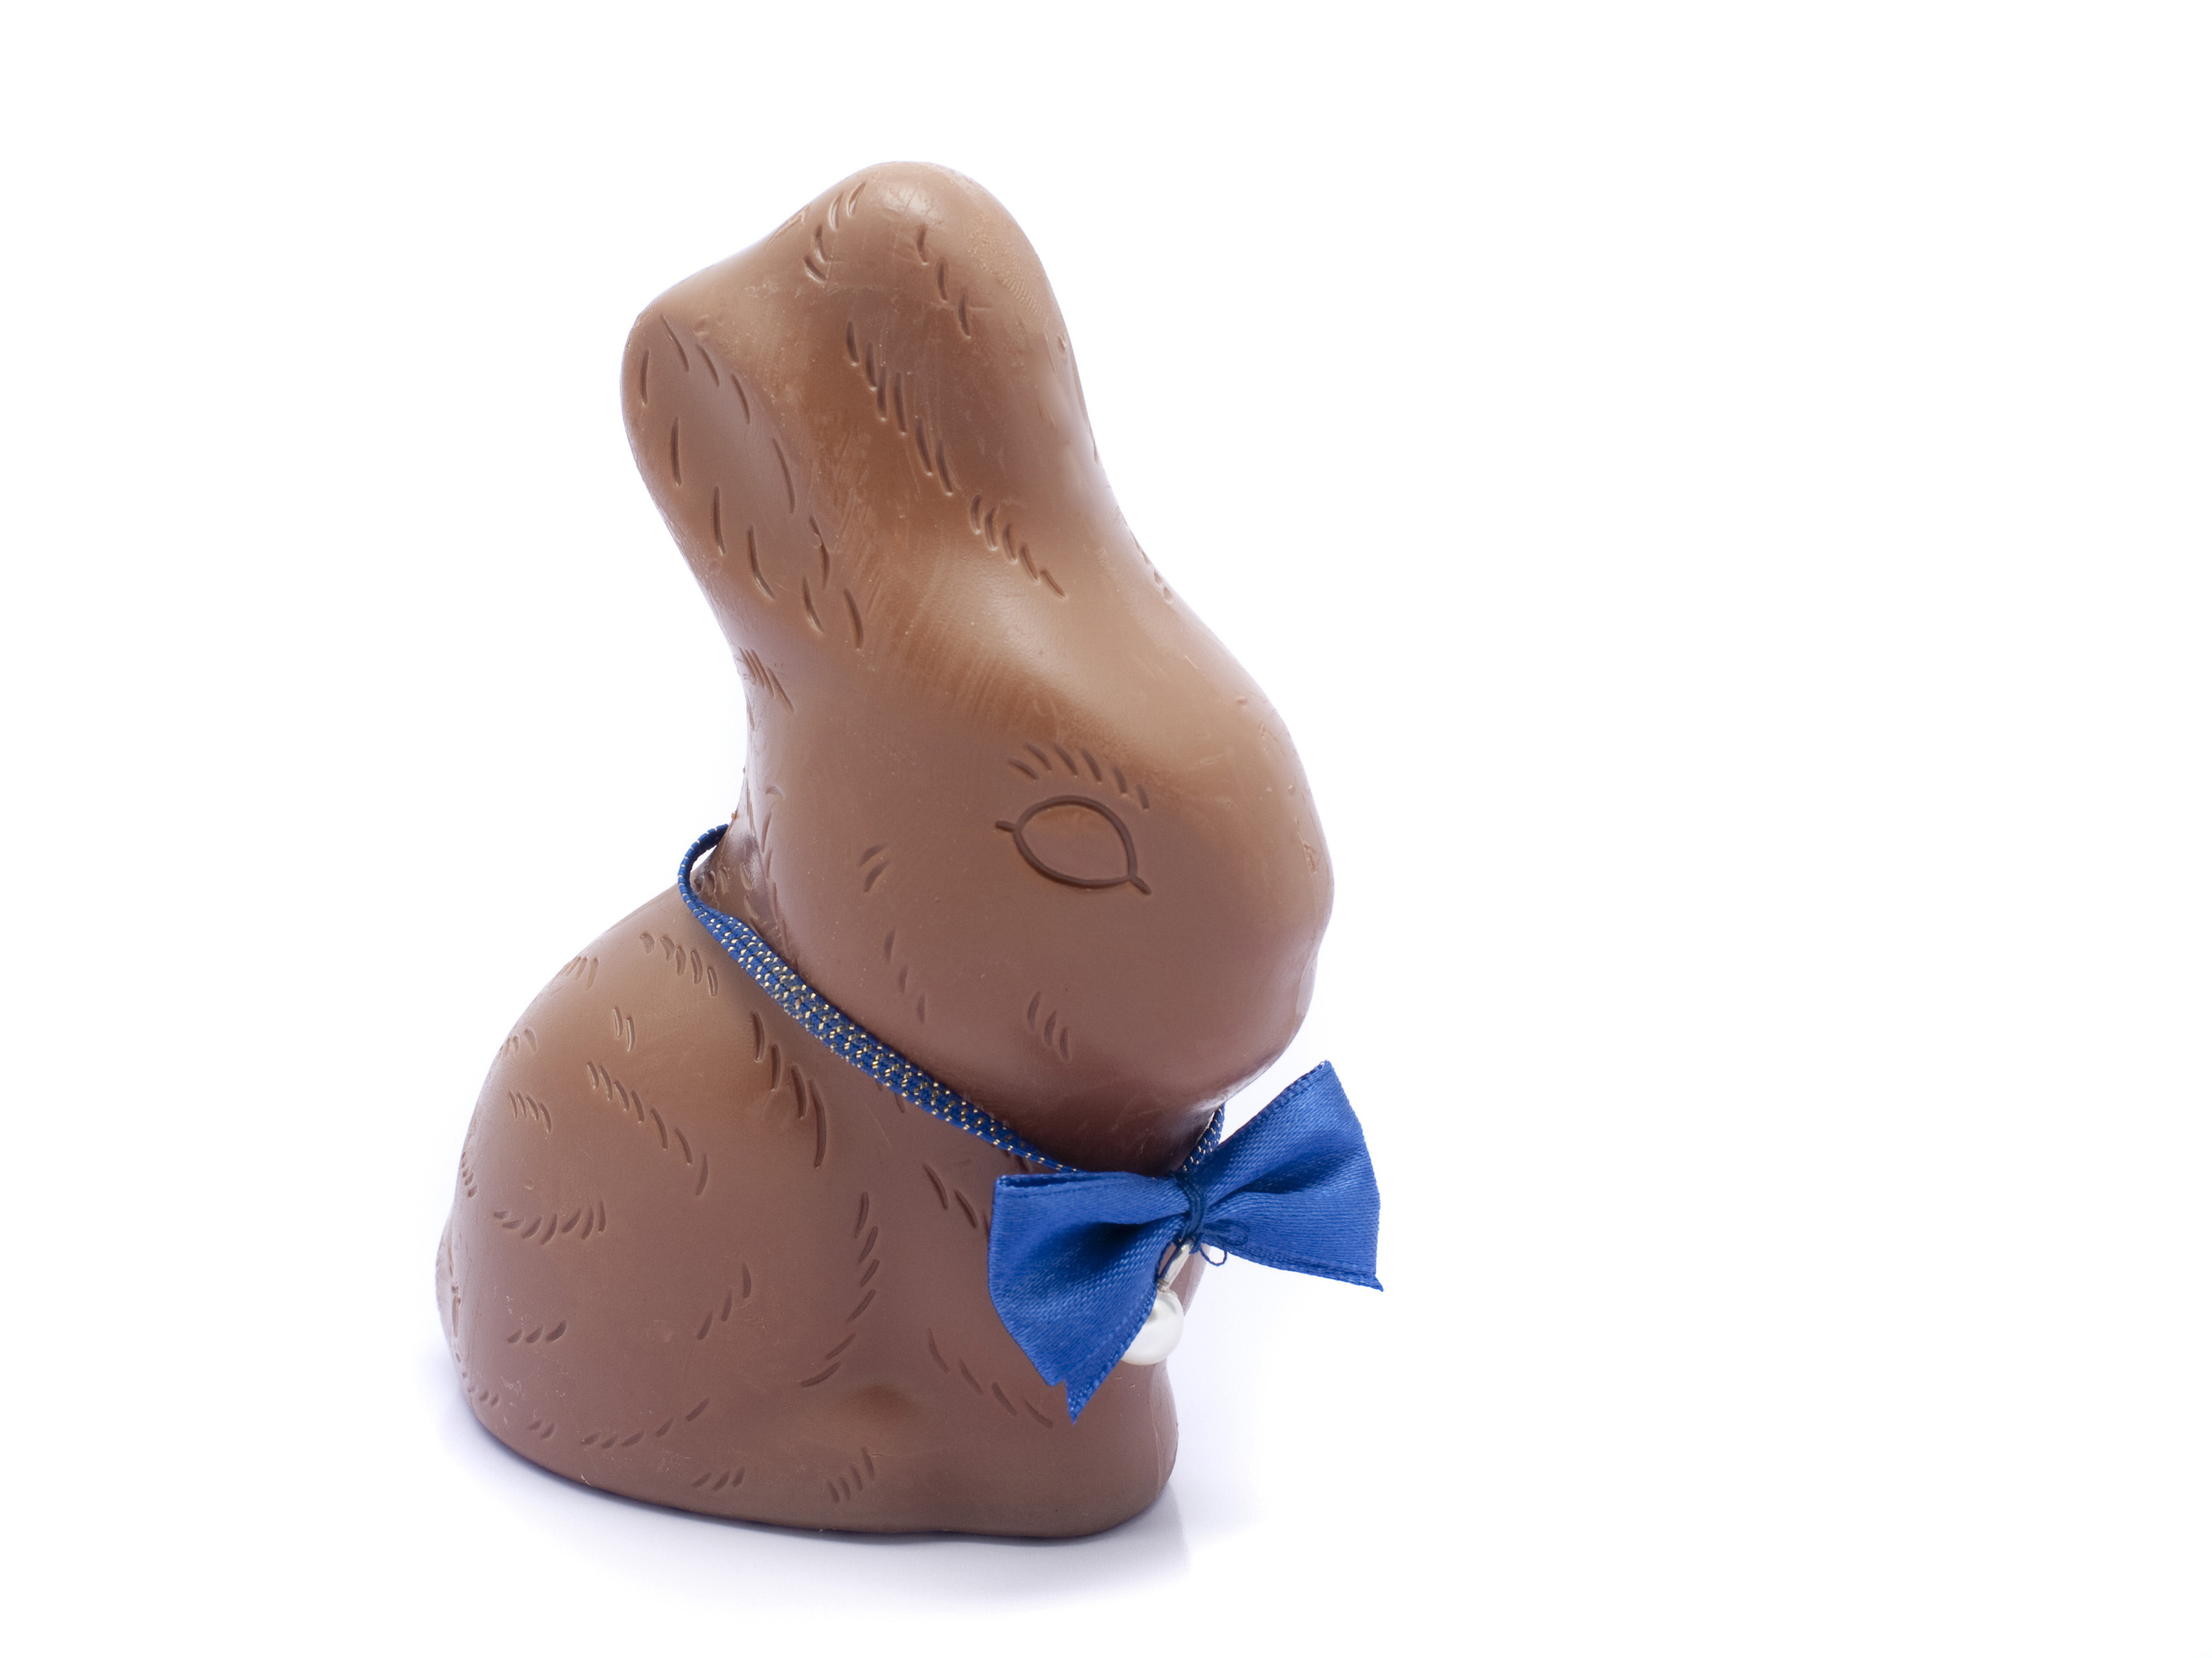 easter_chocolate_rabbit.jpg - Milk chocolate Easter rabbit egg wearing a cute blue bow tie on a white background